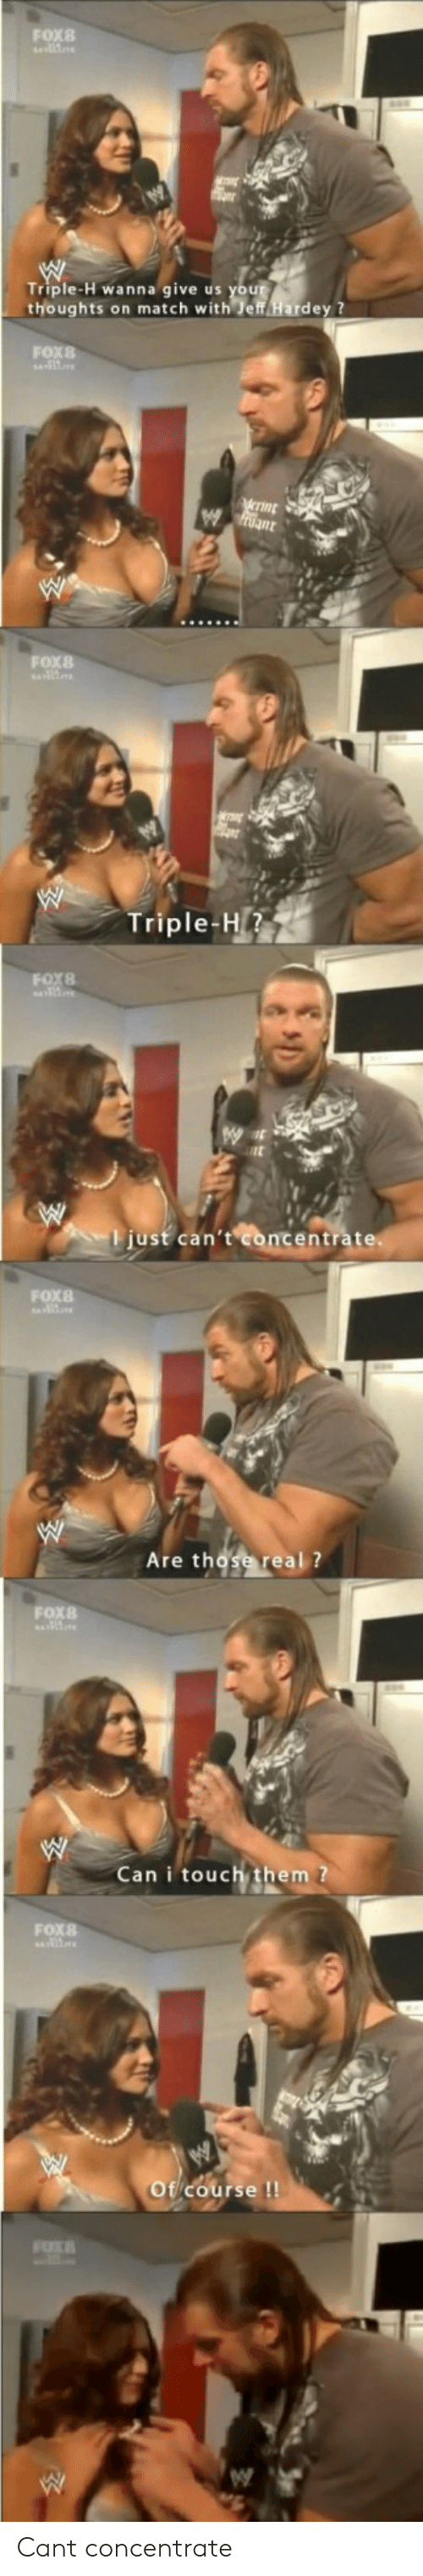 concentrate: FoX8  Triple-H wanna give us your  thoughts on match with%ff Hardey ?  FOX8  FOx8  Triple-H1  just can't  ntráte  FOX8  Are those real ?  FOX8  Can i touch them  FOX8  course!  GV Cant concentrate